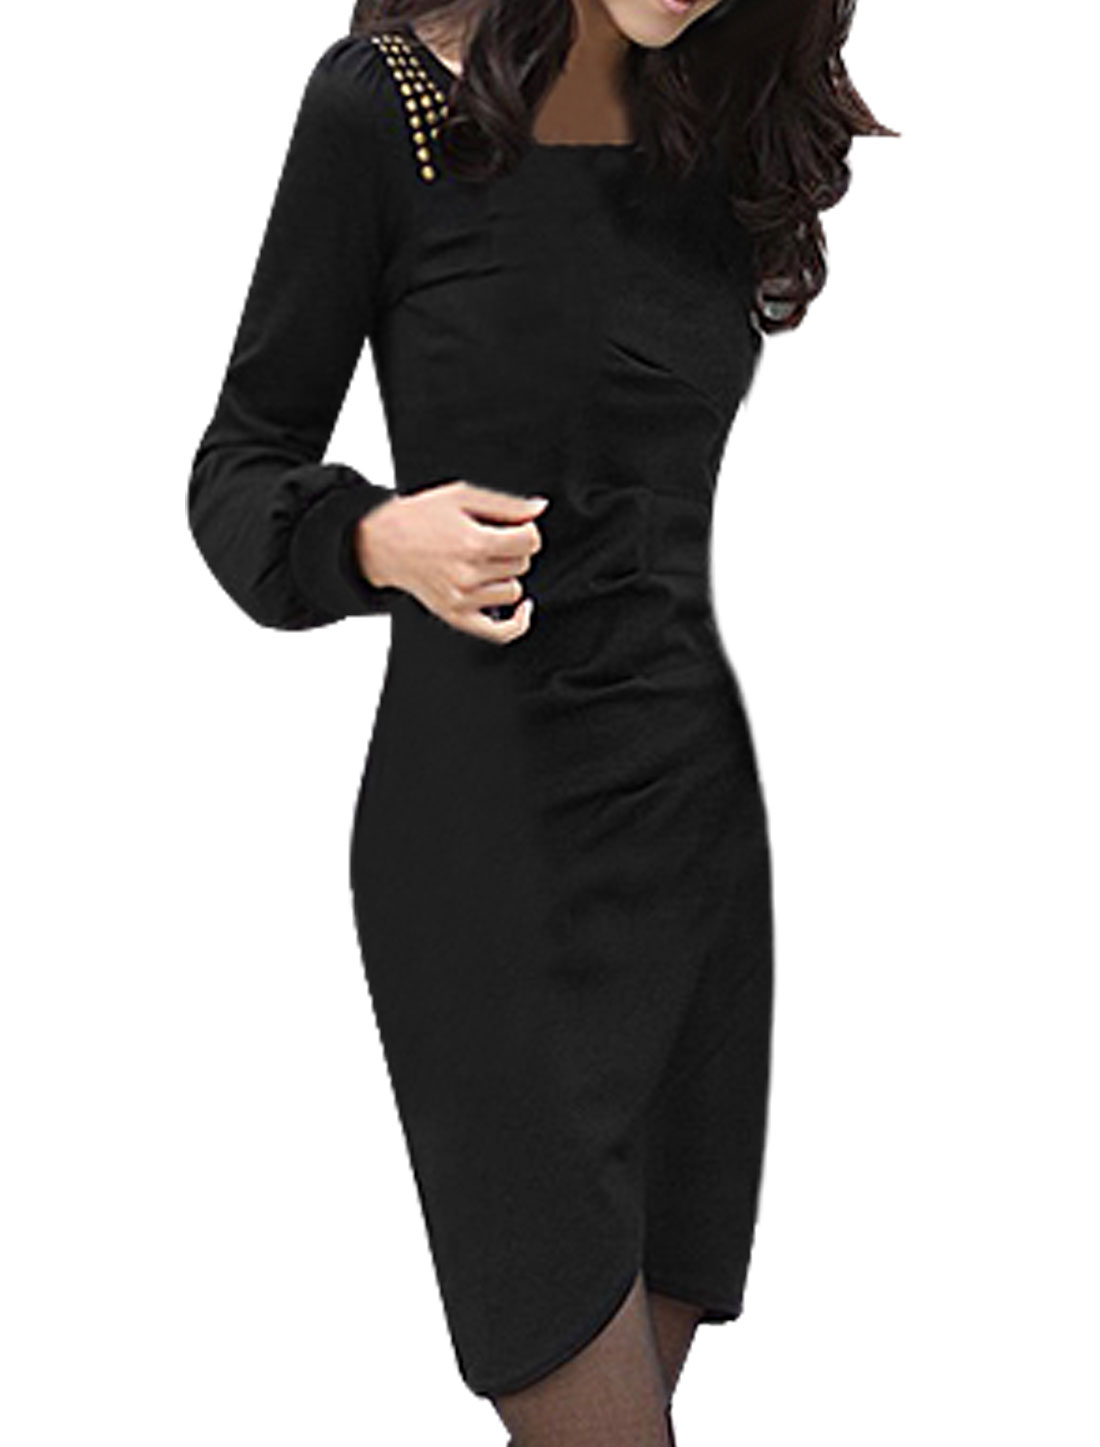 Autumn Studded Shoulder Round Neck Long Sleeve Dress Black XS